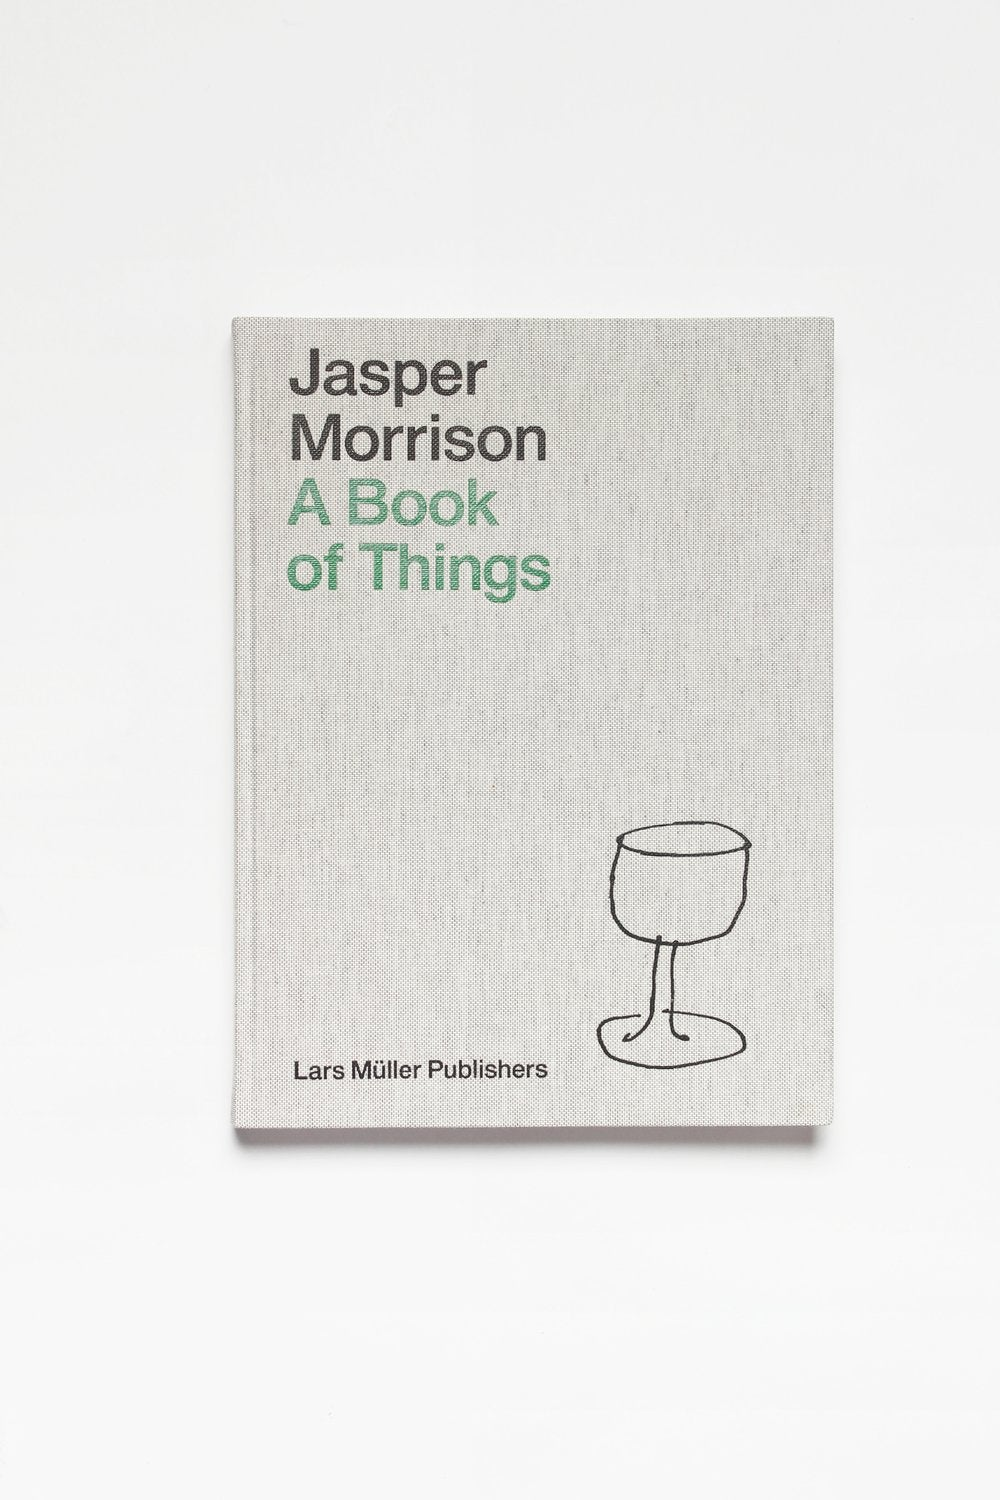 Image of A Book of Things